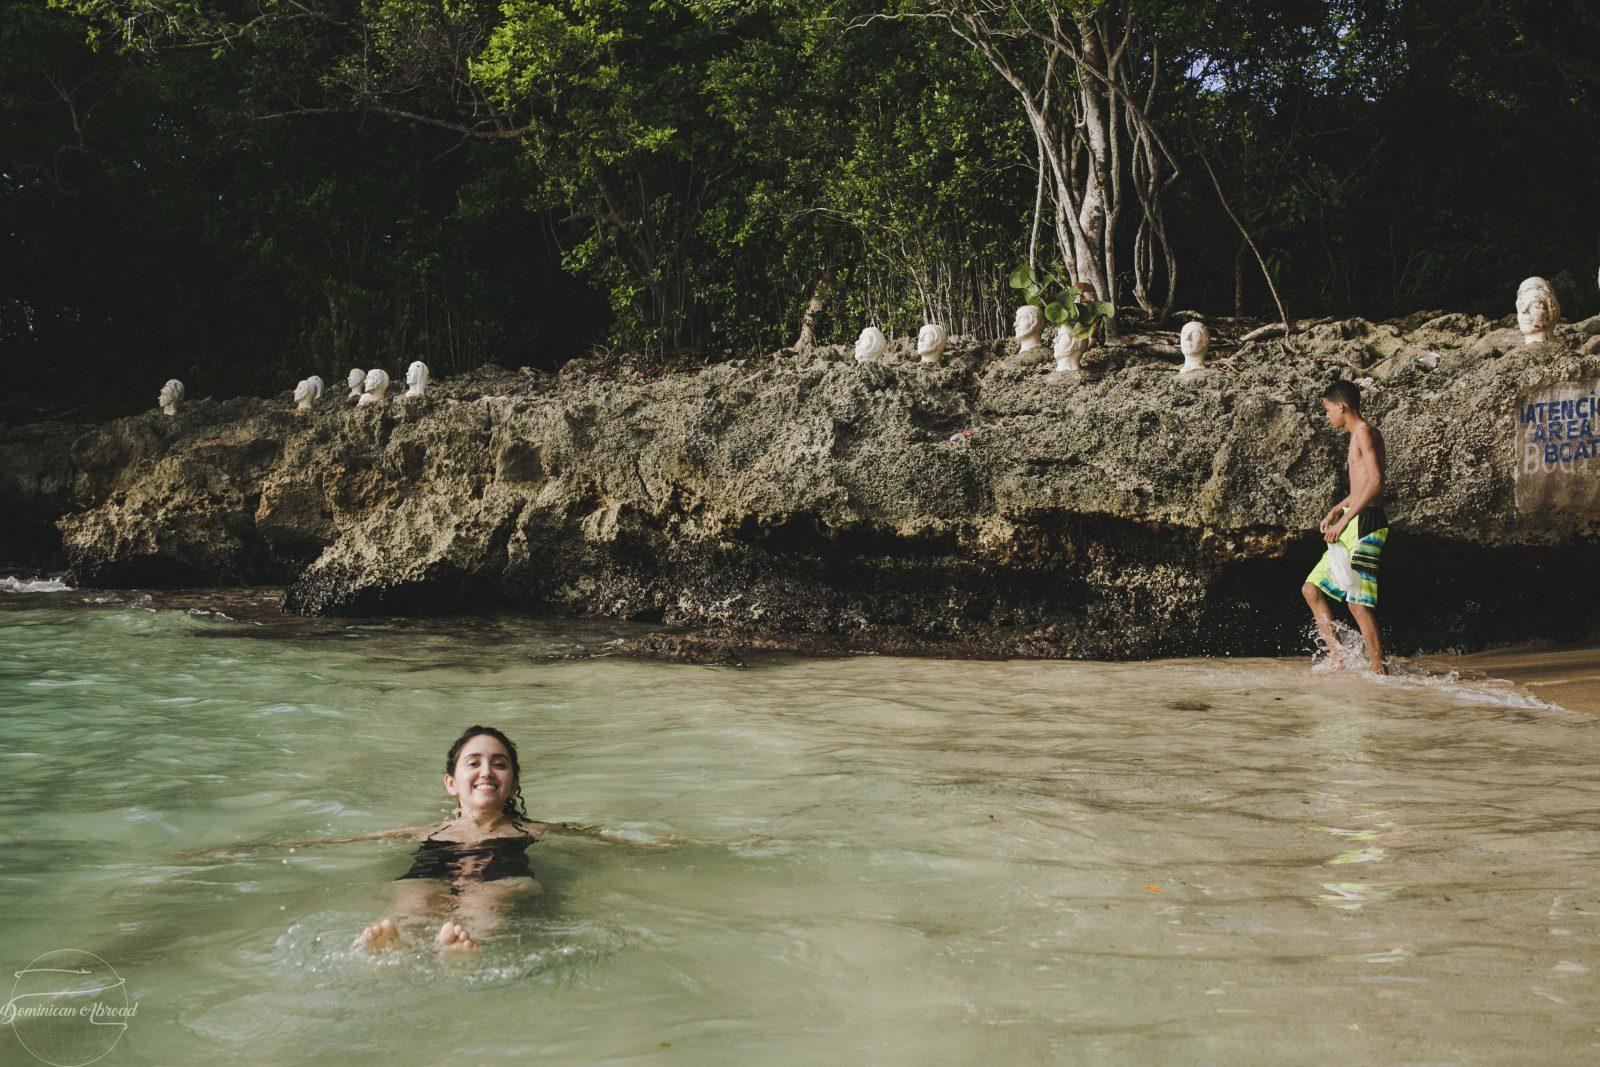 Swimming at Playa Caleton in the Dominican Republic.